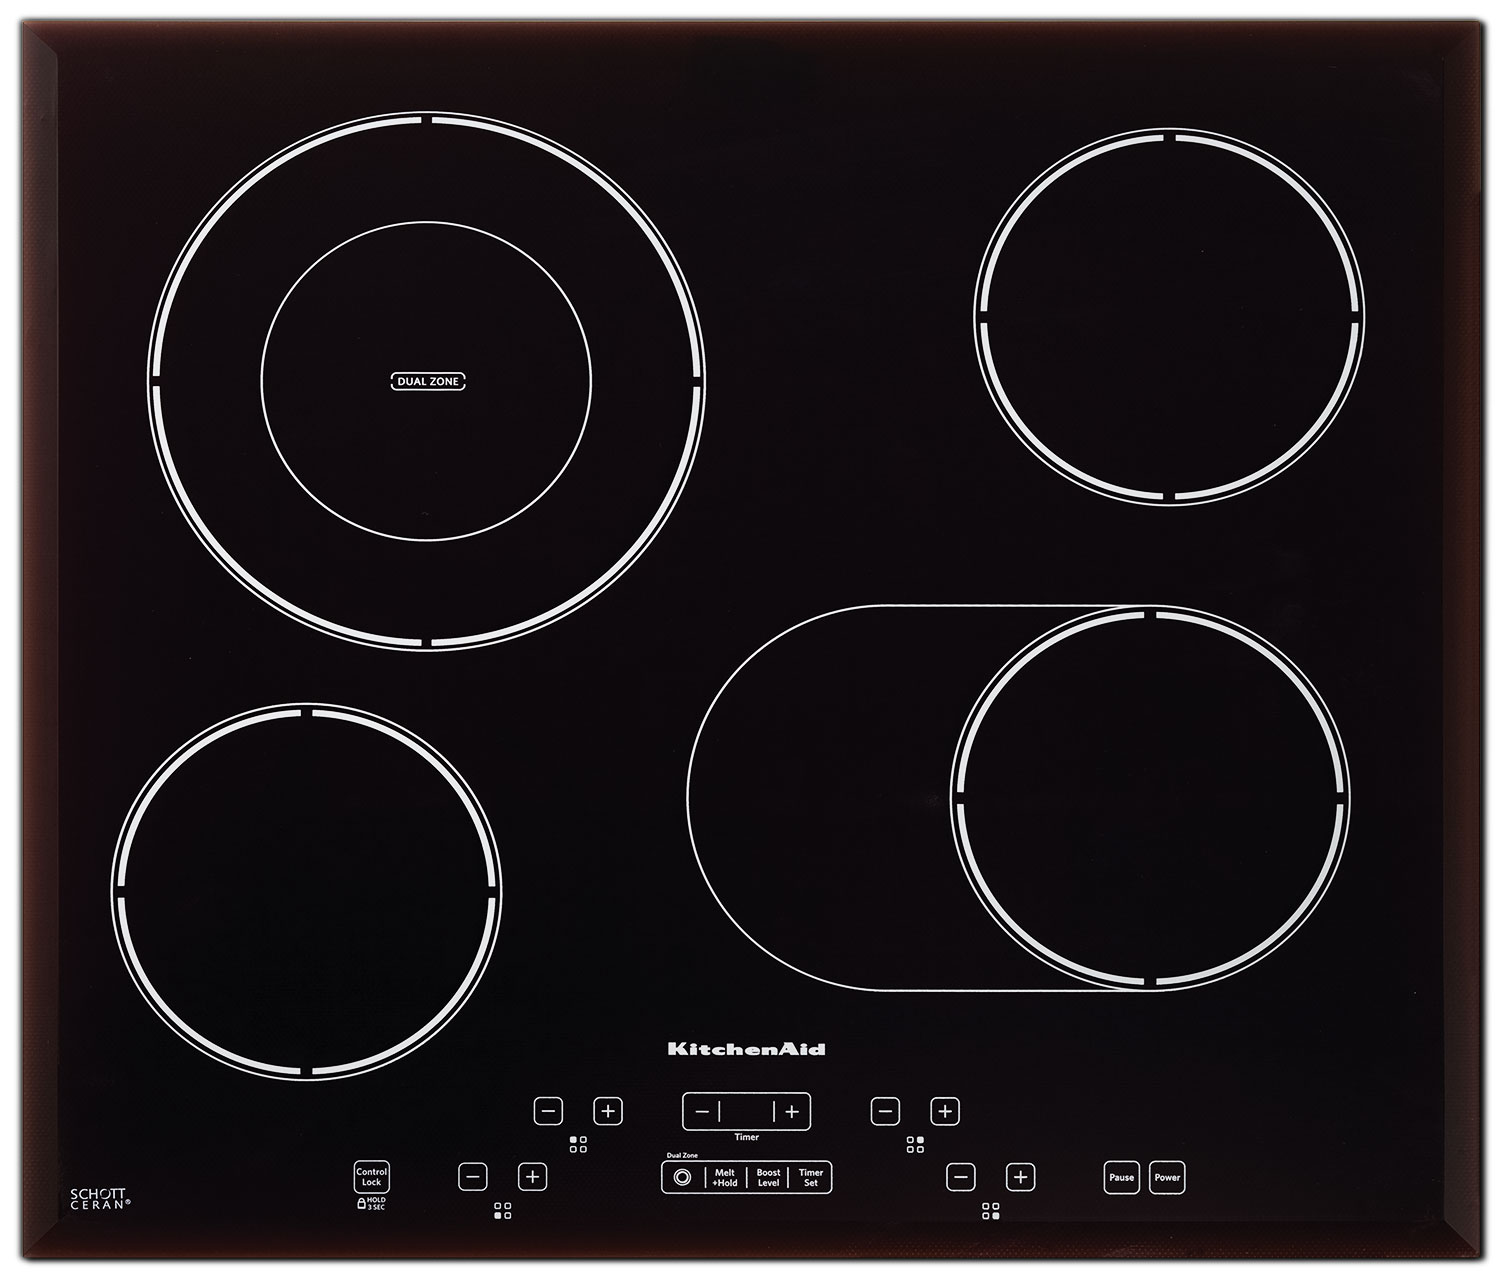 "KitchenAid Black Stainless Steel 24"" Electric Cooktop - KECC548BSS"